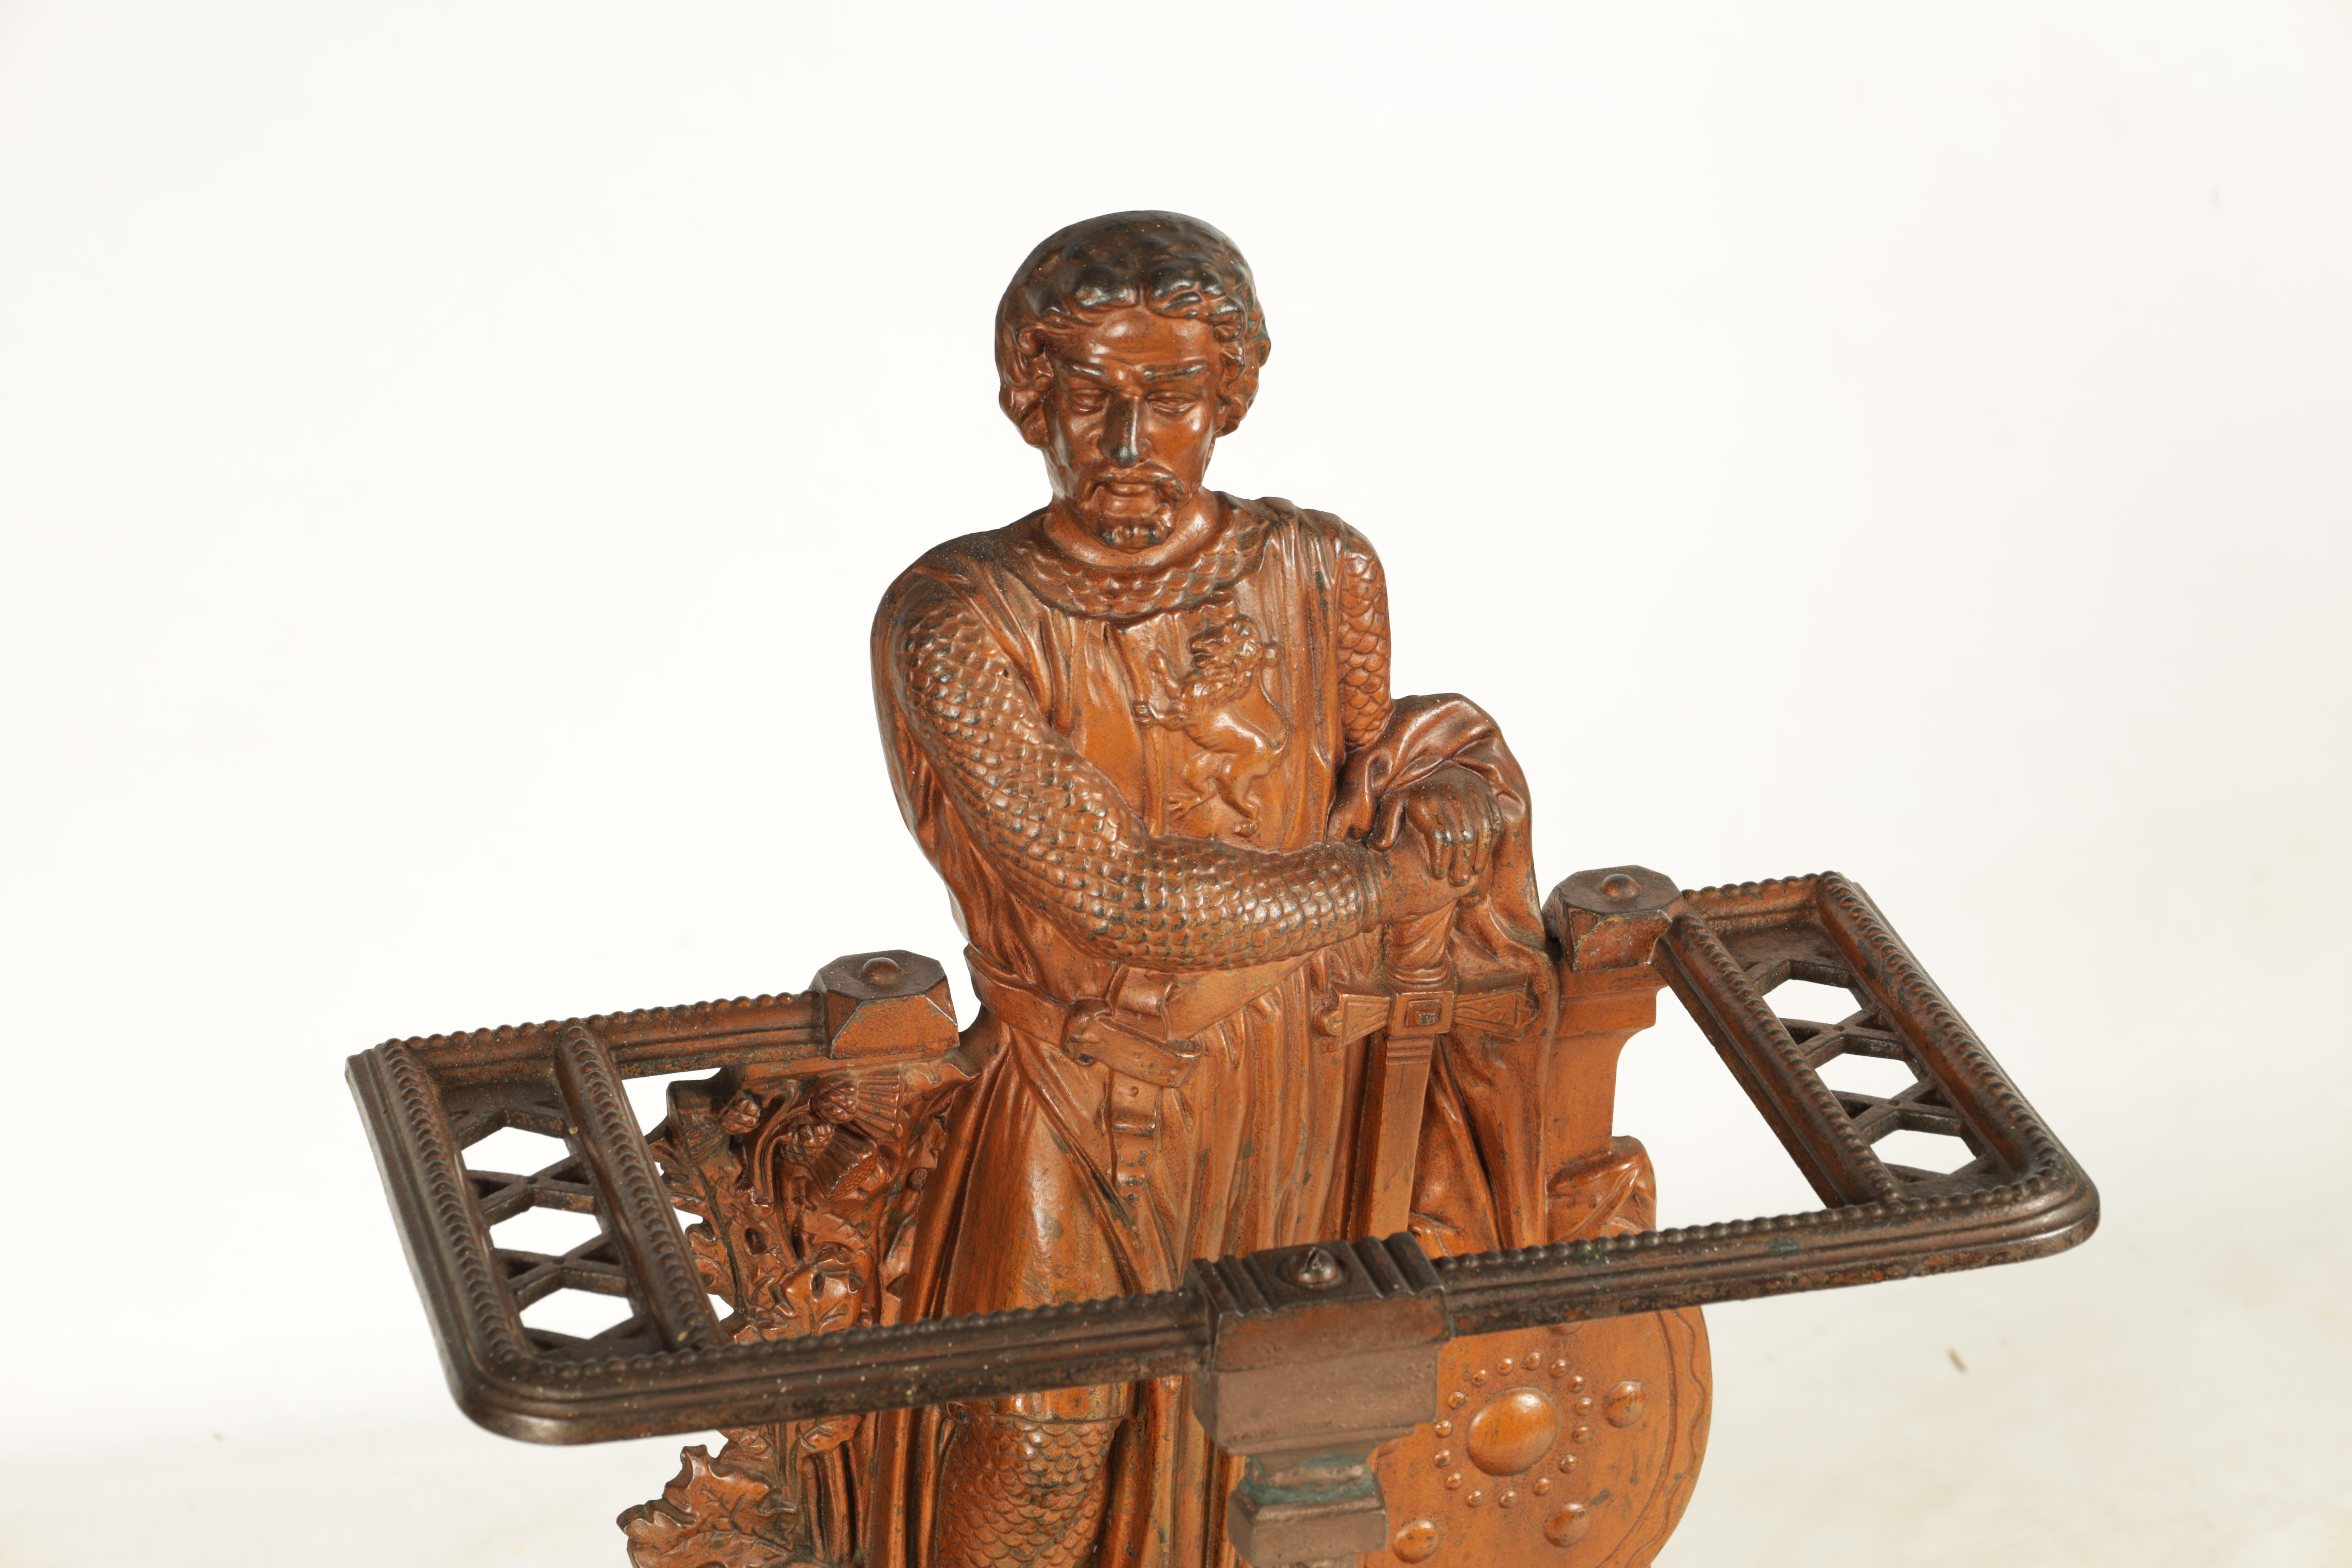 A LATE 19TH CENTURY PAINTED CAST IRON COALBROOKEDALE STYLE STICK STAND DEPICTING WILLIAM WALLACE - Image 2 of 5